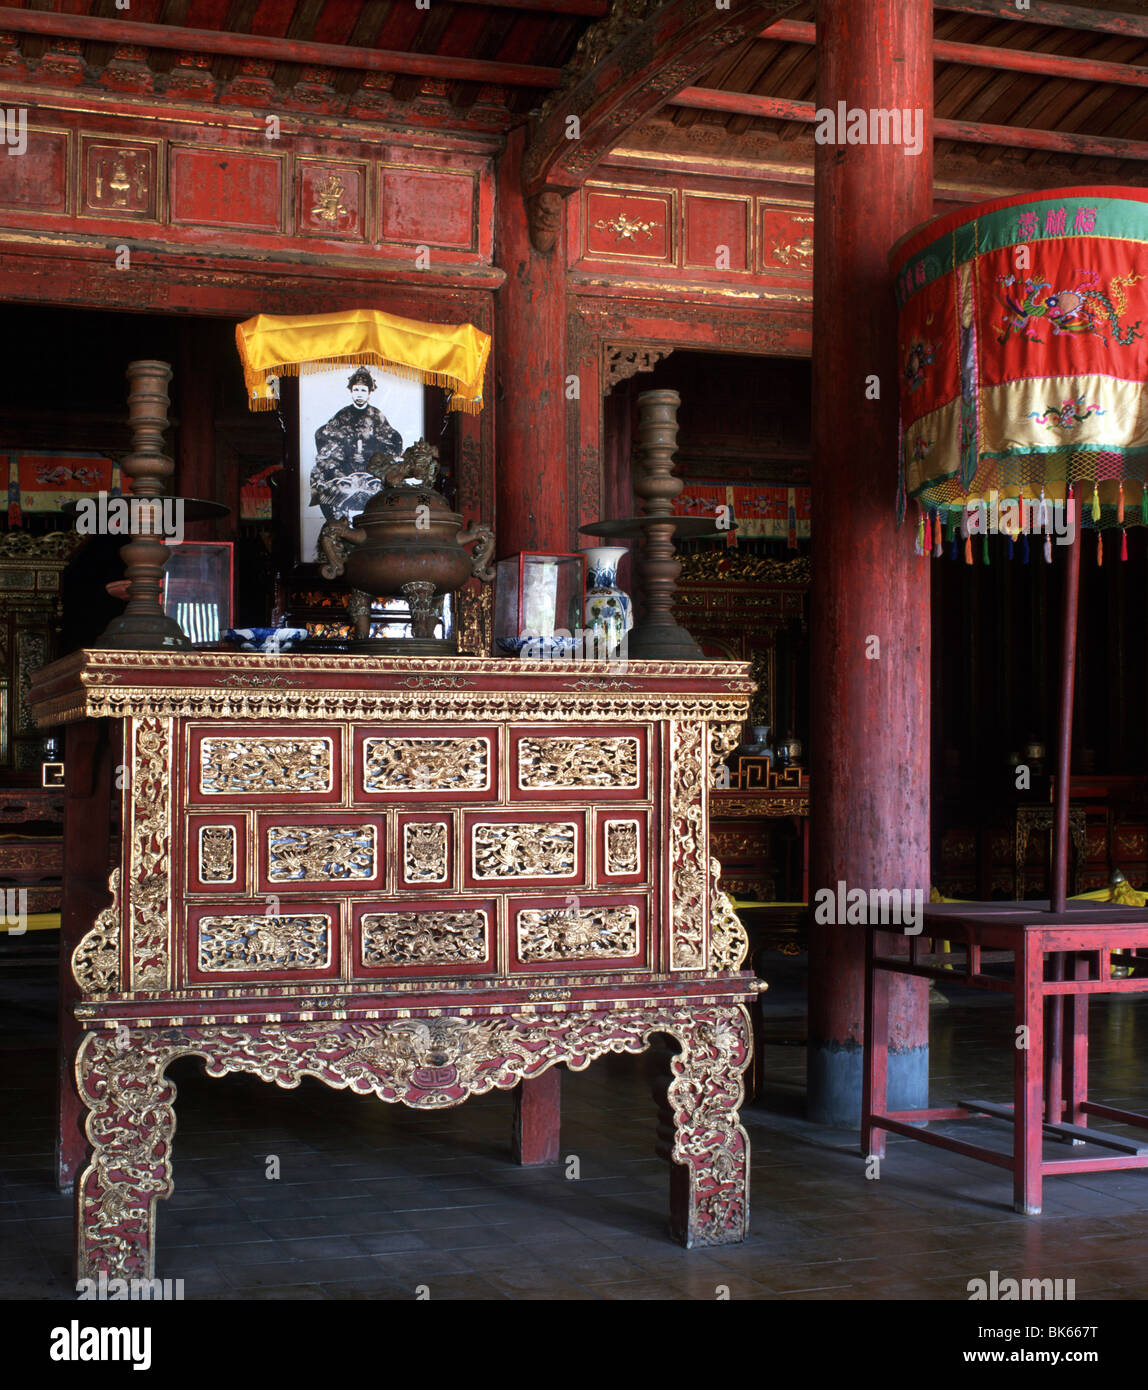 The Dynastic Temple (The Mieu), dedicated to ten Nguyen Emperors, The Citadel, Hue, UNESCO World Heritage Site, - Stock Image